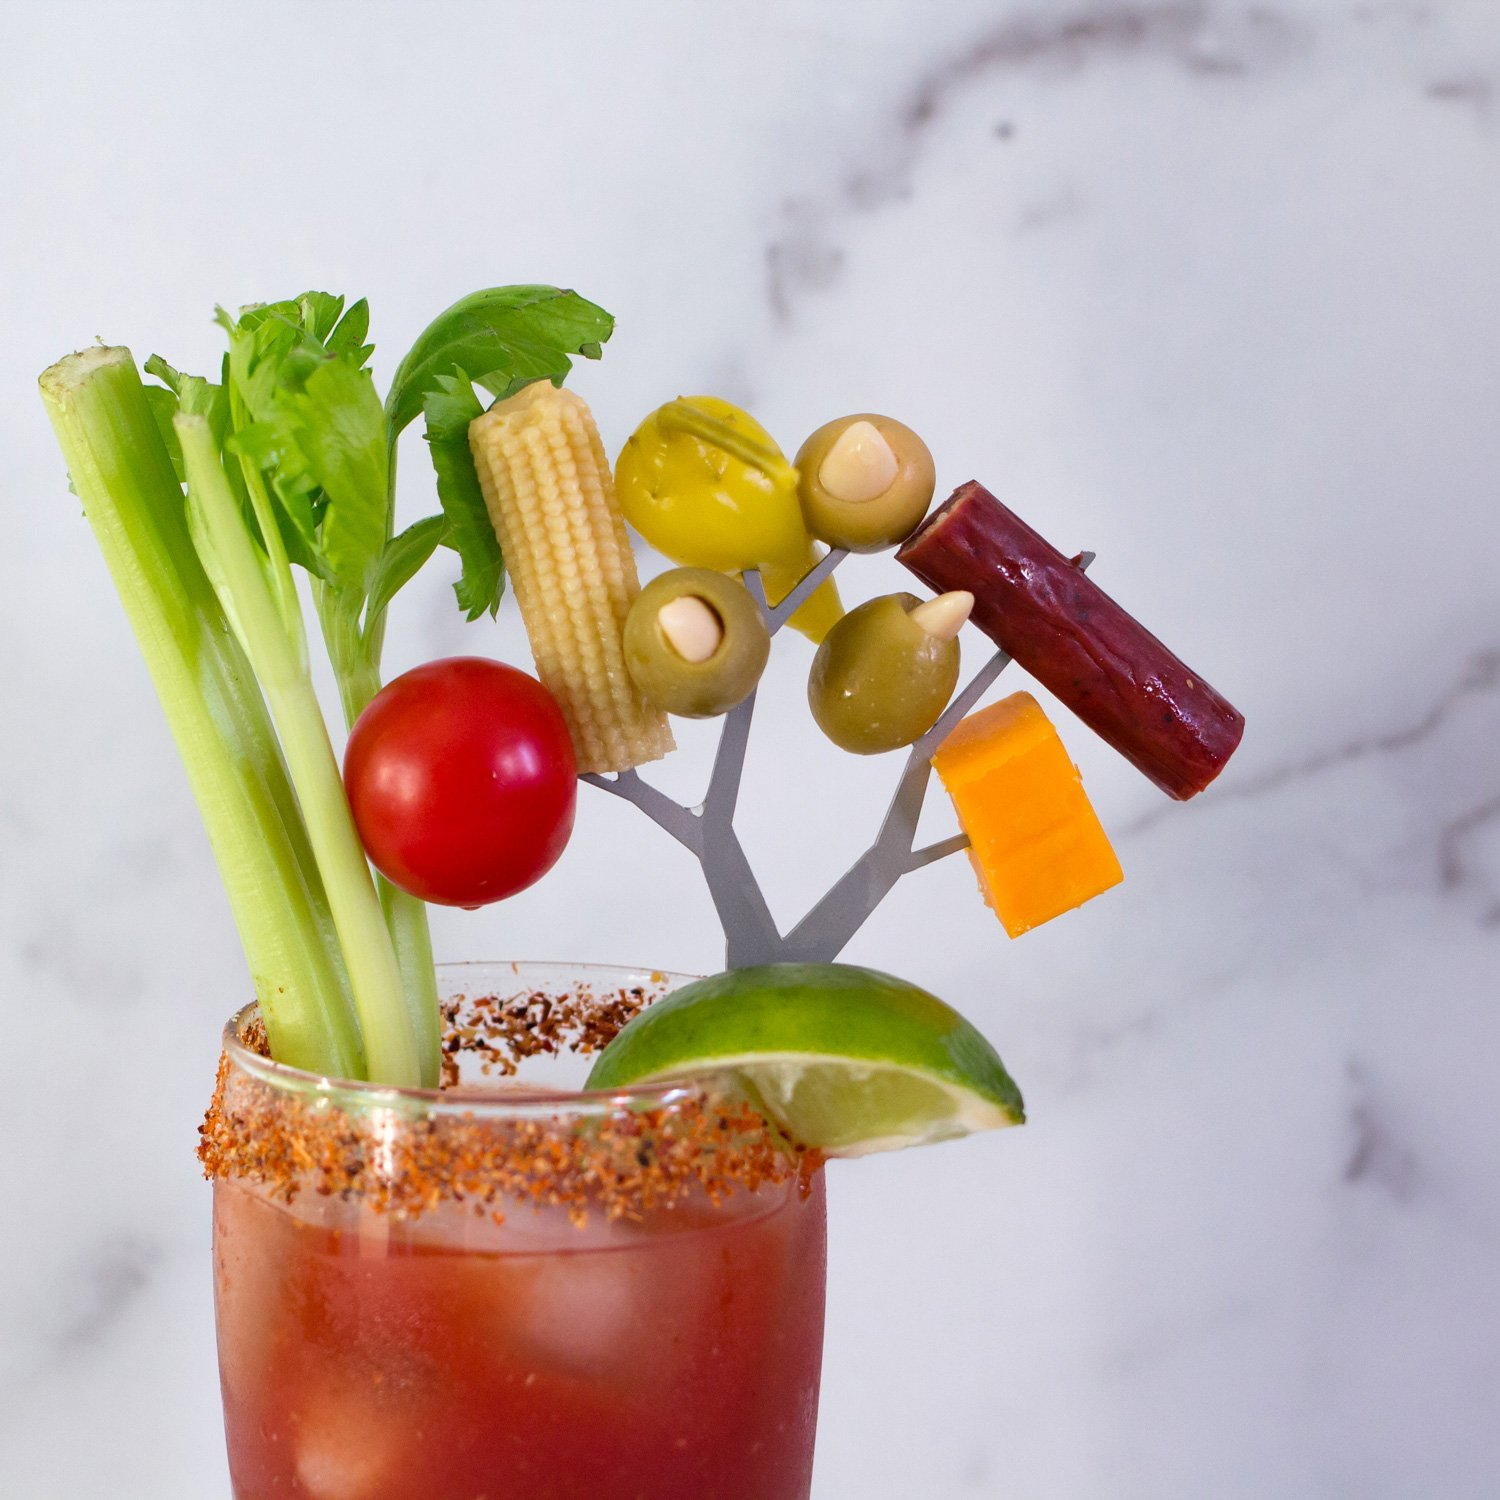 Spicy Bloody Mary Garnishes